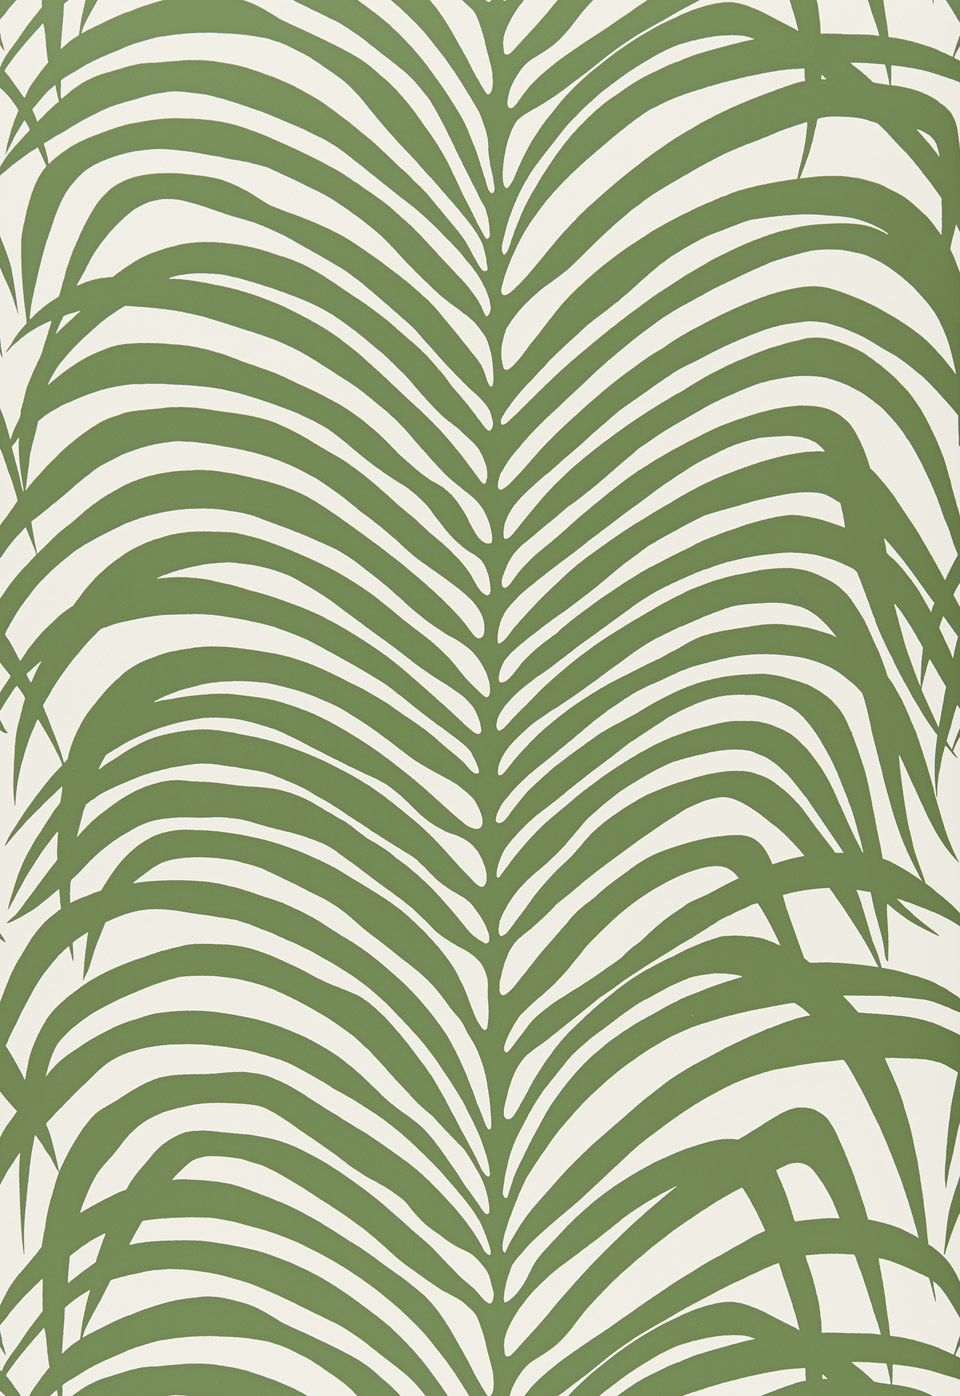 Powder room? Wallcovering / Wallpaper | Zebra Palm in Jungle ...